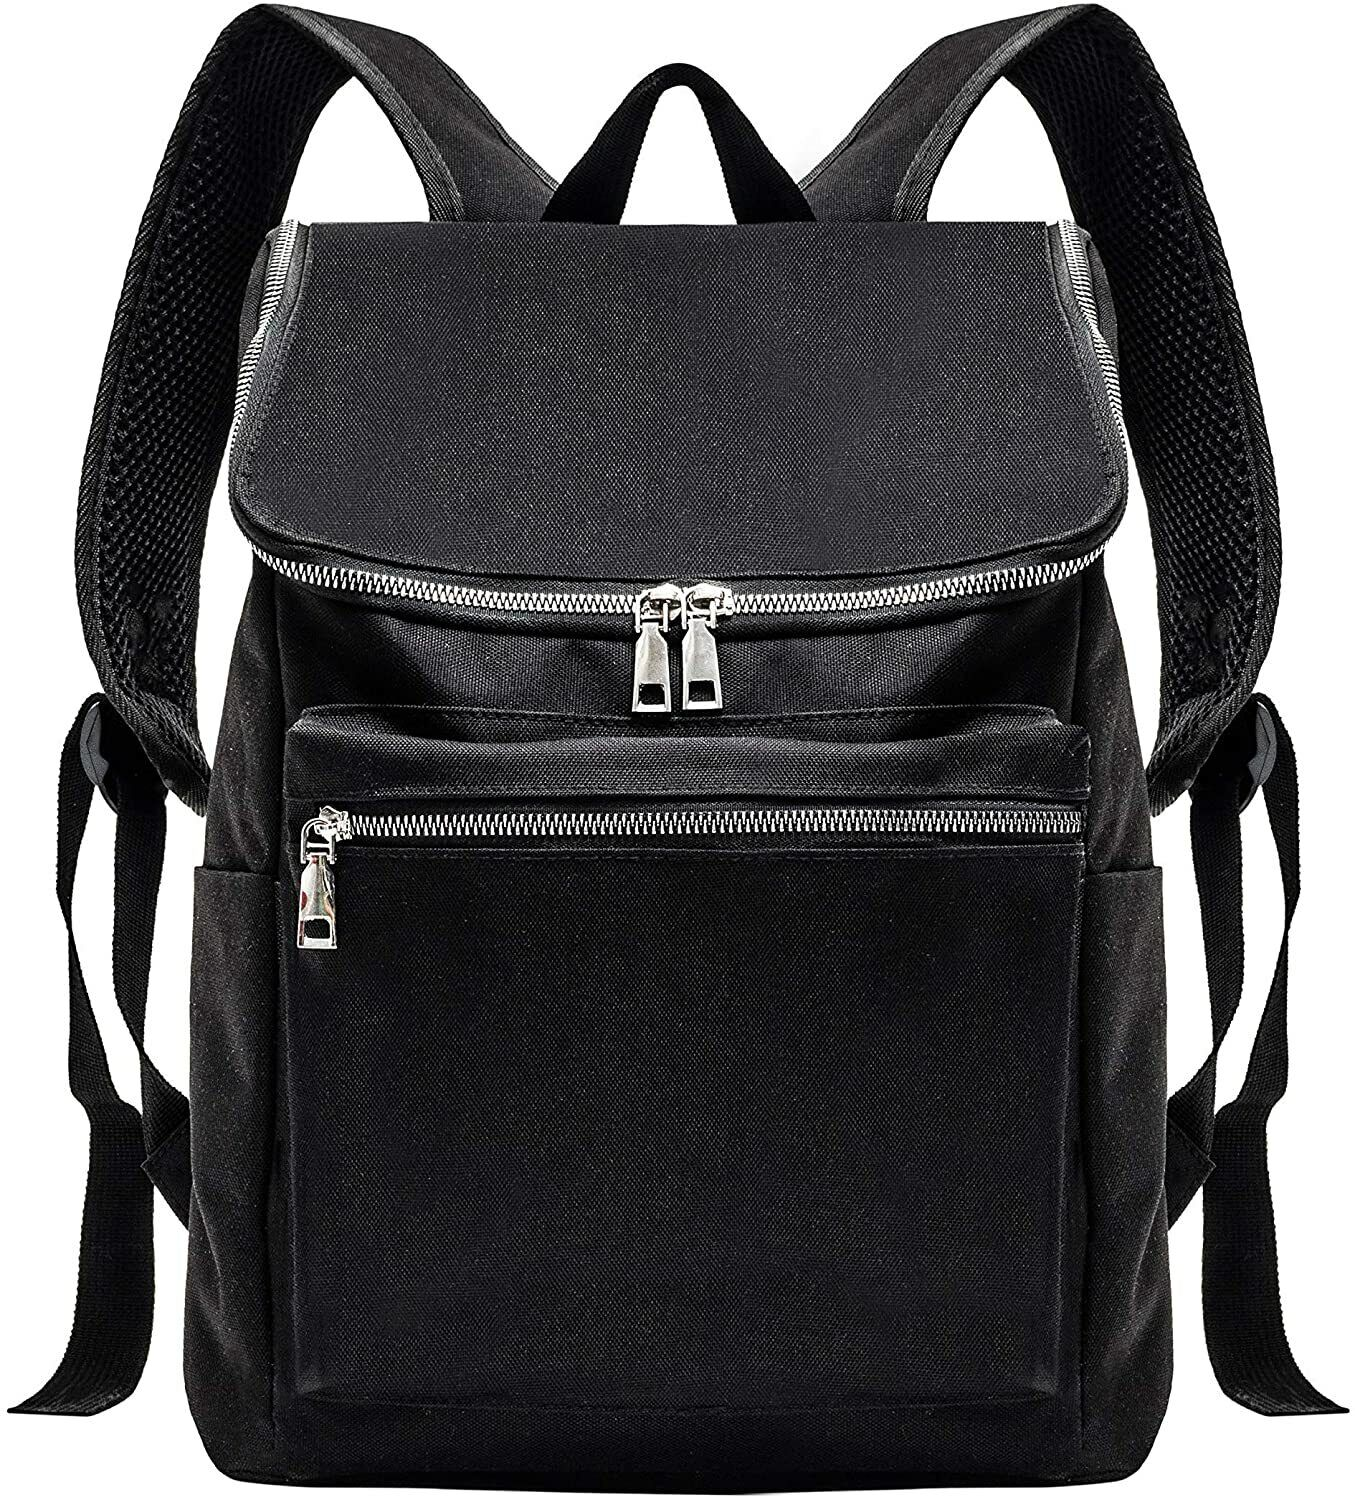 Backpack Women Waterproof Anti Theft Small Daypack Rucksack Fashion Bag  eco-fri Clothing, Shoes & Accessories